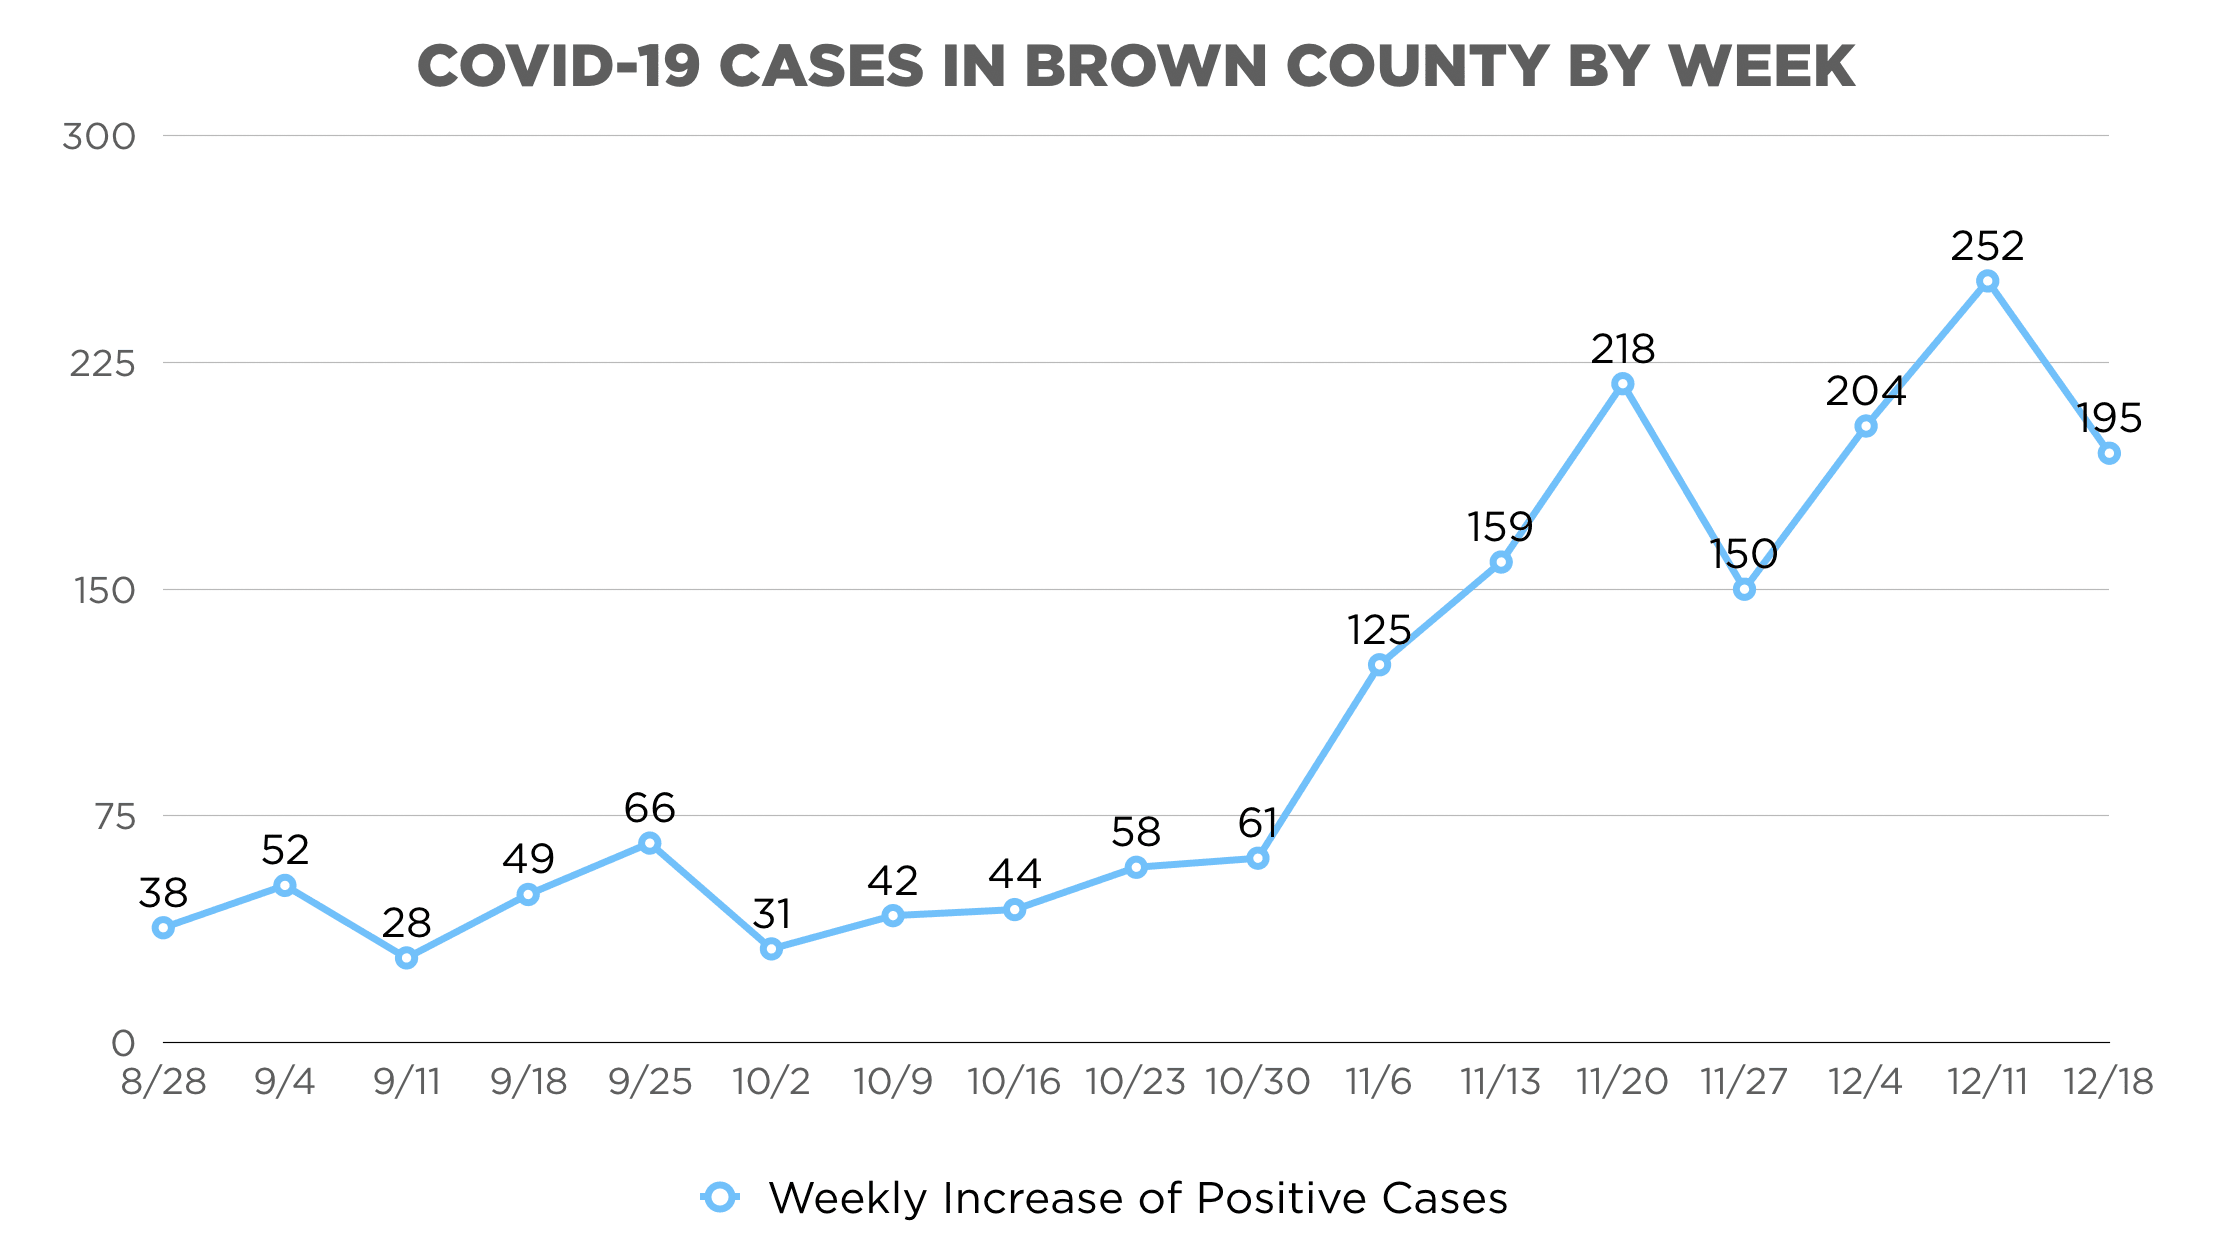 Brown County COVID-19 Cases by Week